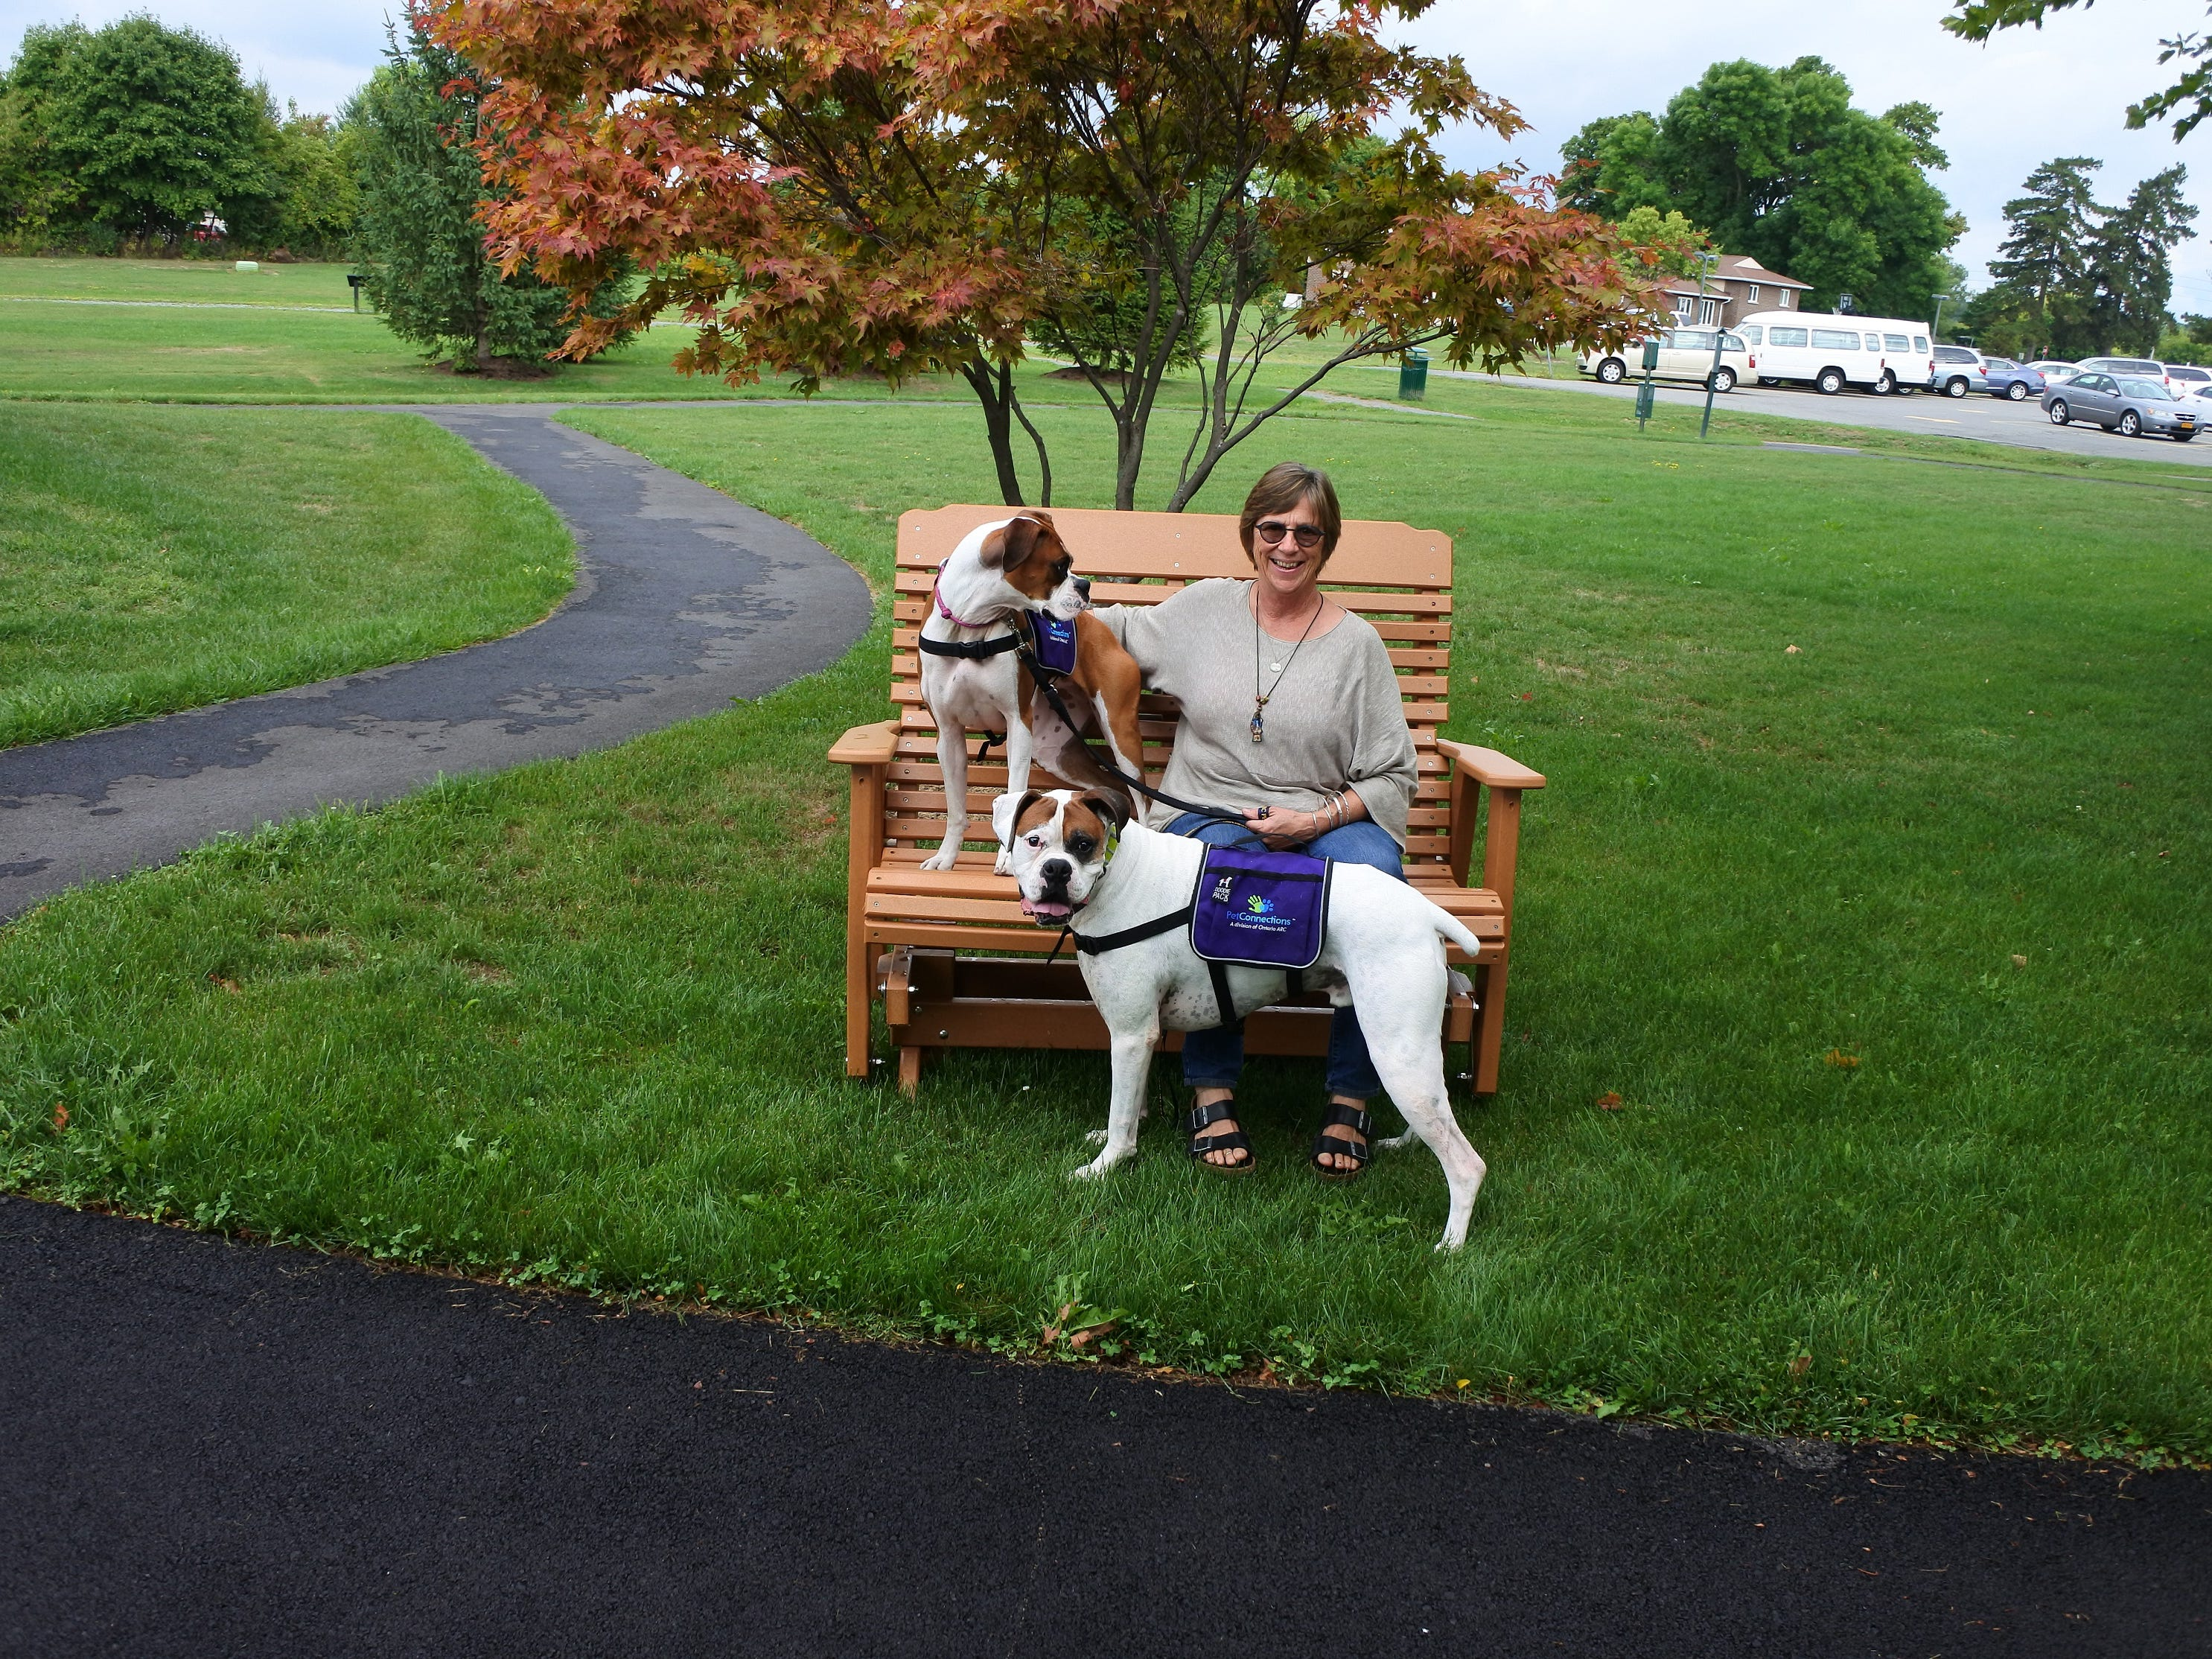 Gail Furst is a certified professional dog trainer and works with Pet Connections, a division of Ontario ARC, to train and certify local therapy dogs. Her two dogs, Albert James and Willow, are both certified therapy dogs.